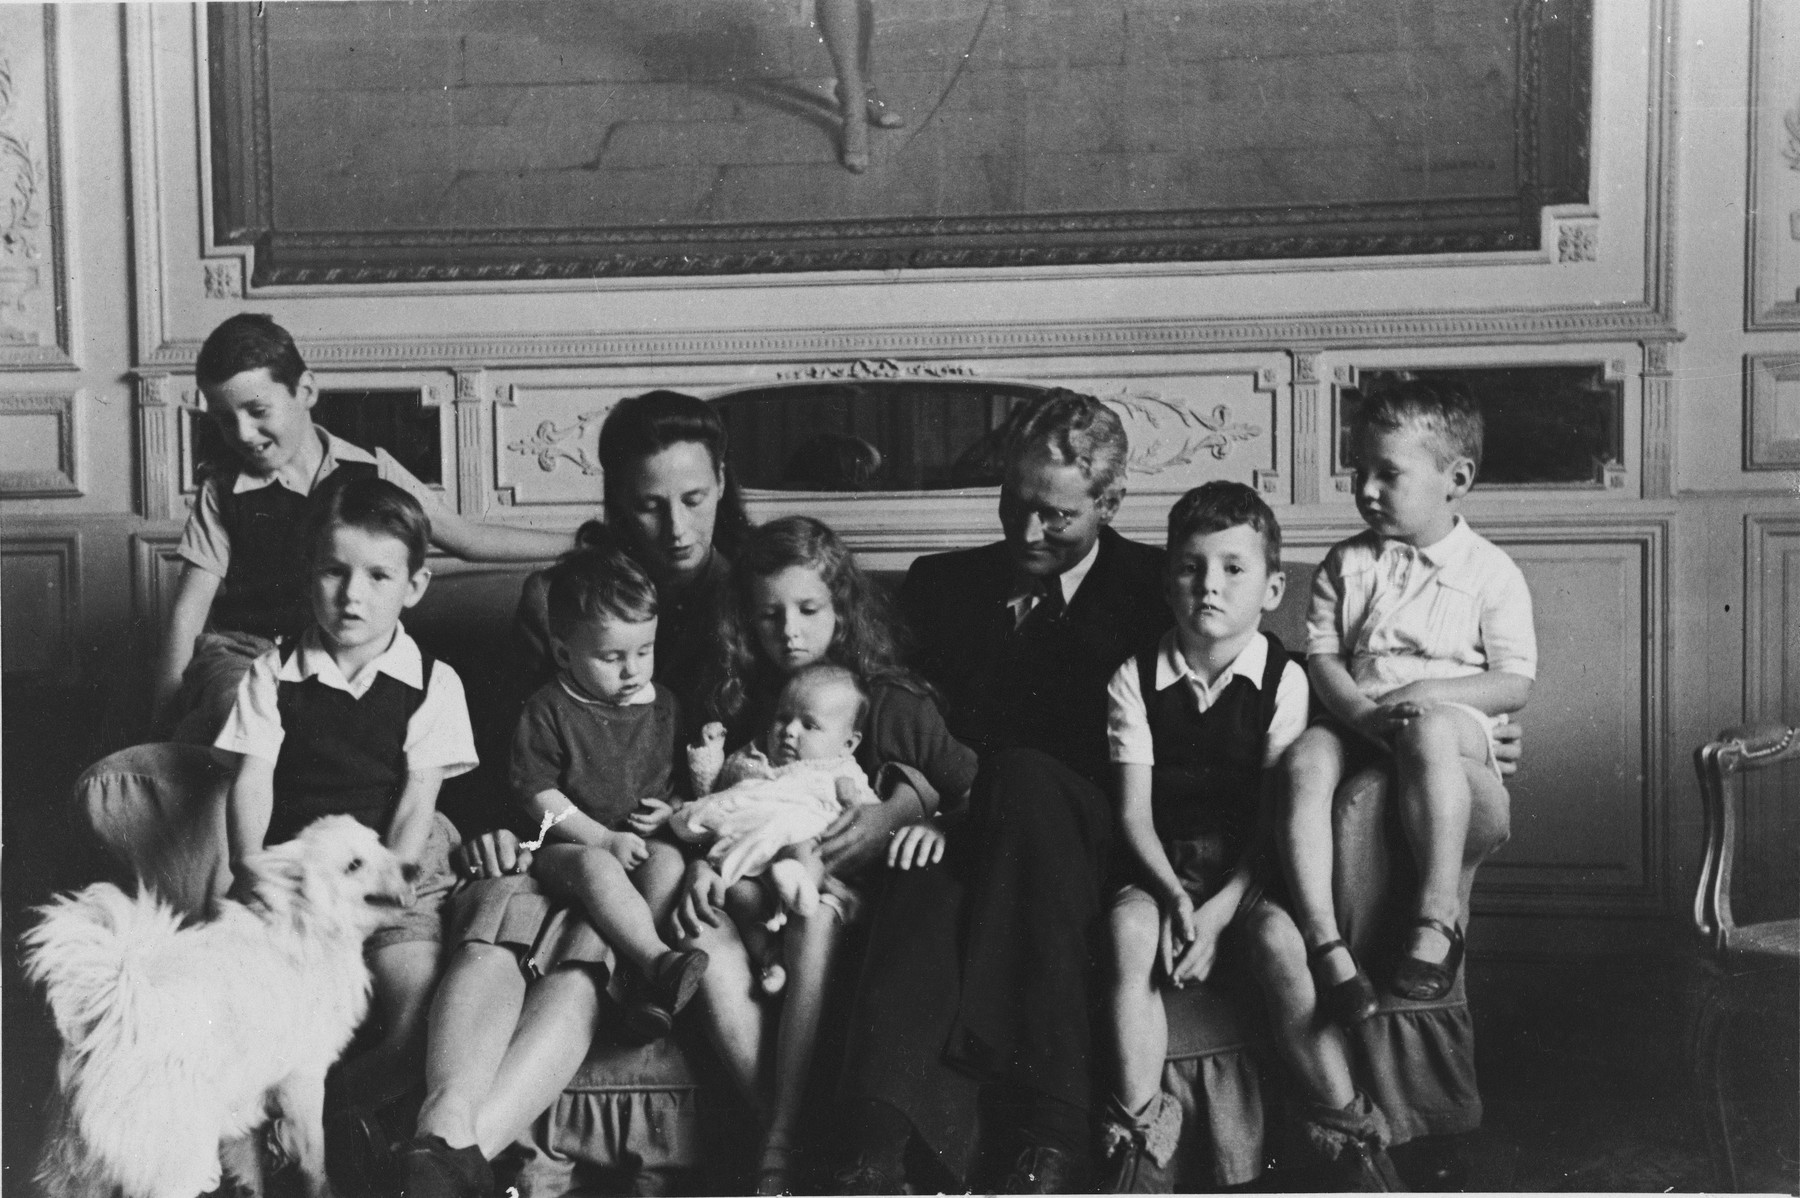 Vice Consul Hiram Bingham poses with his family at his residence in Buenos Aires, Argentina.  Pictured are Hiram and Rose Bingham with seven of their children.  The children are, from left to right: Hiram Anthony, John, Robert Kim, Rose Tiffany holding baby Maria Cecilia, Thomas and David.